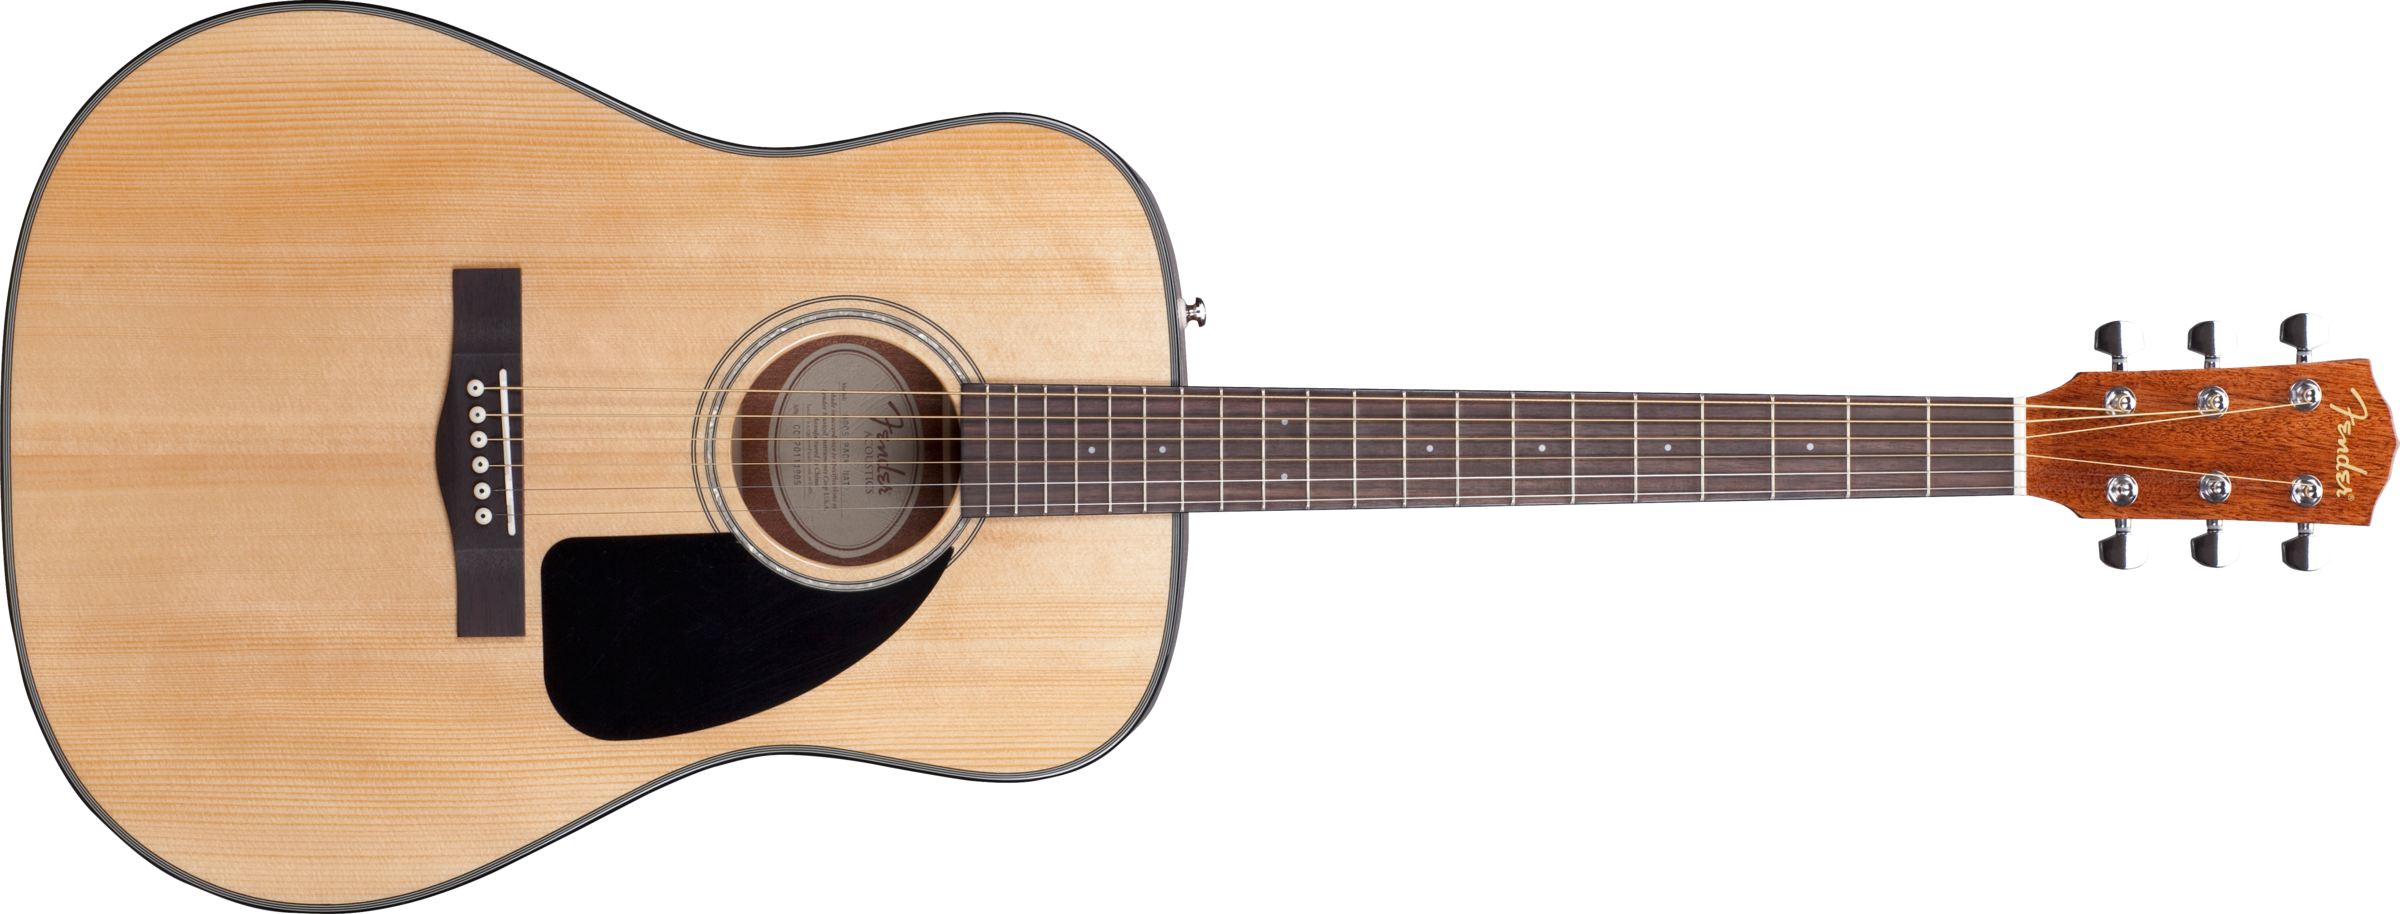 Fender® DG-8S Acoustic Pack, Solid Spruce Top, Mahogany Back and Sides, Natural